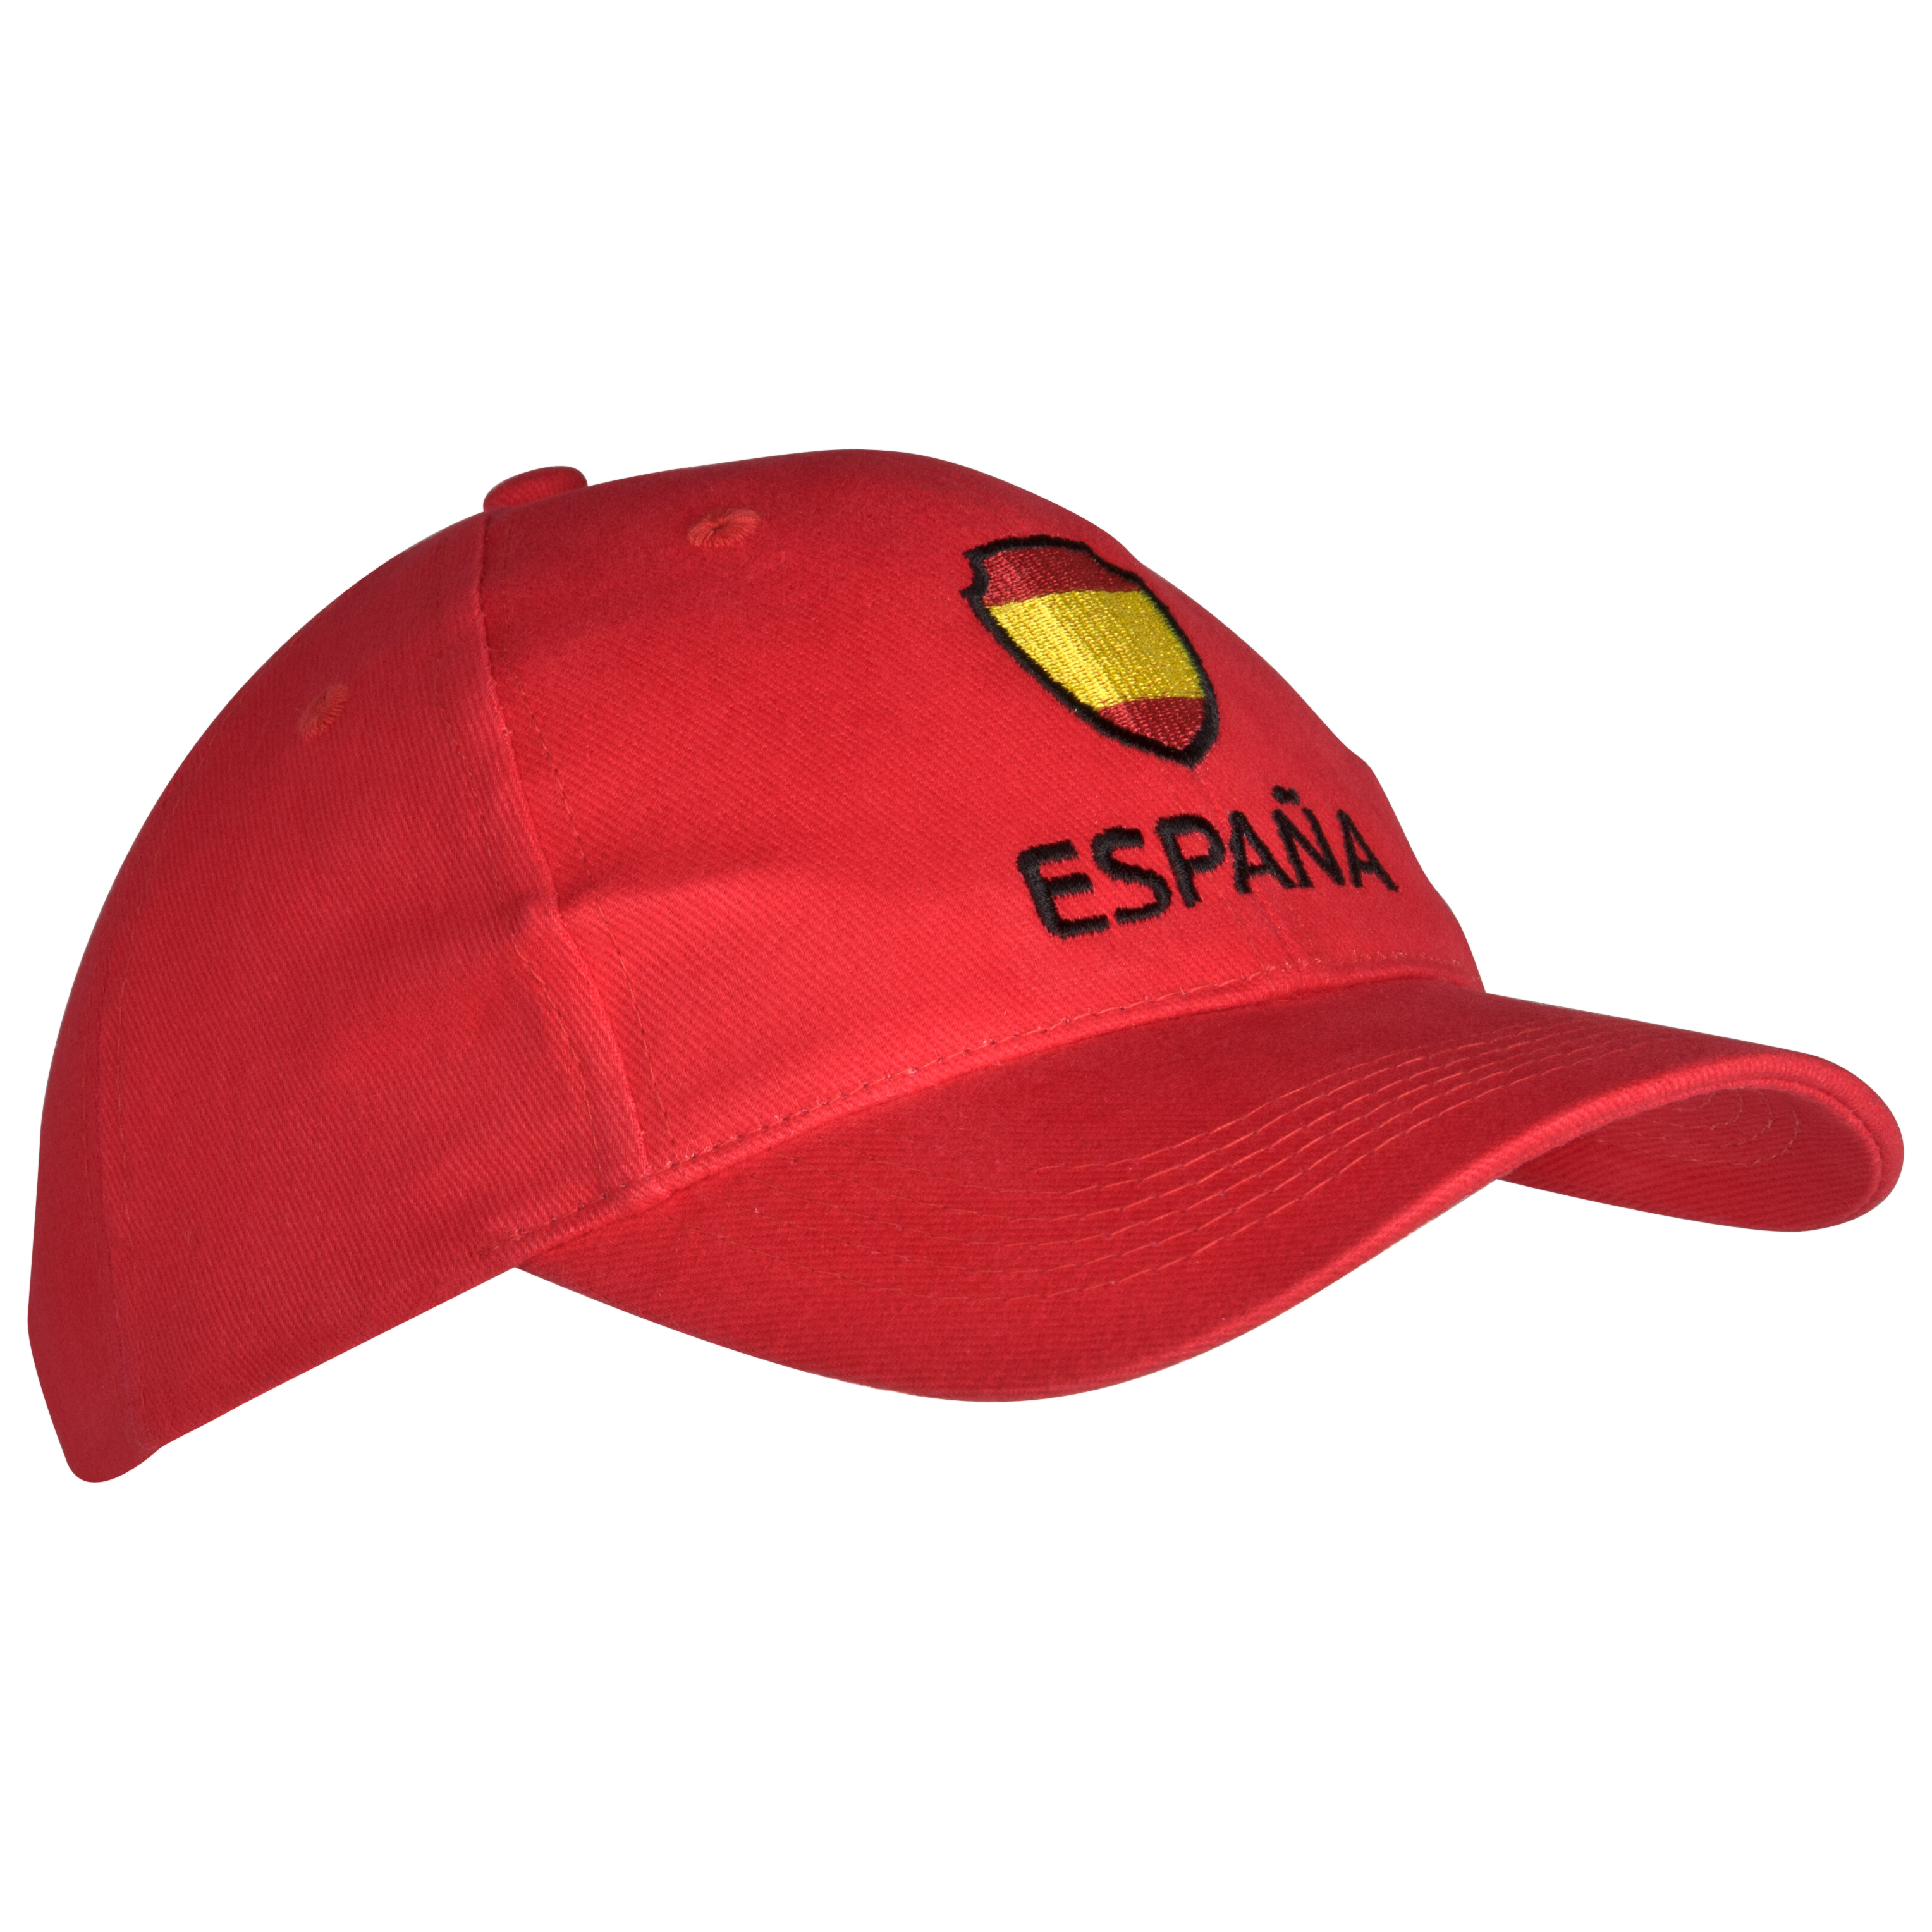 Euro 2012 Spain Cap - Red/Blue